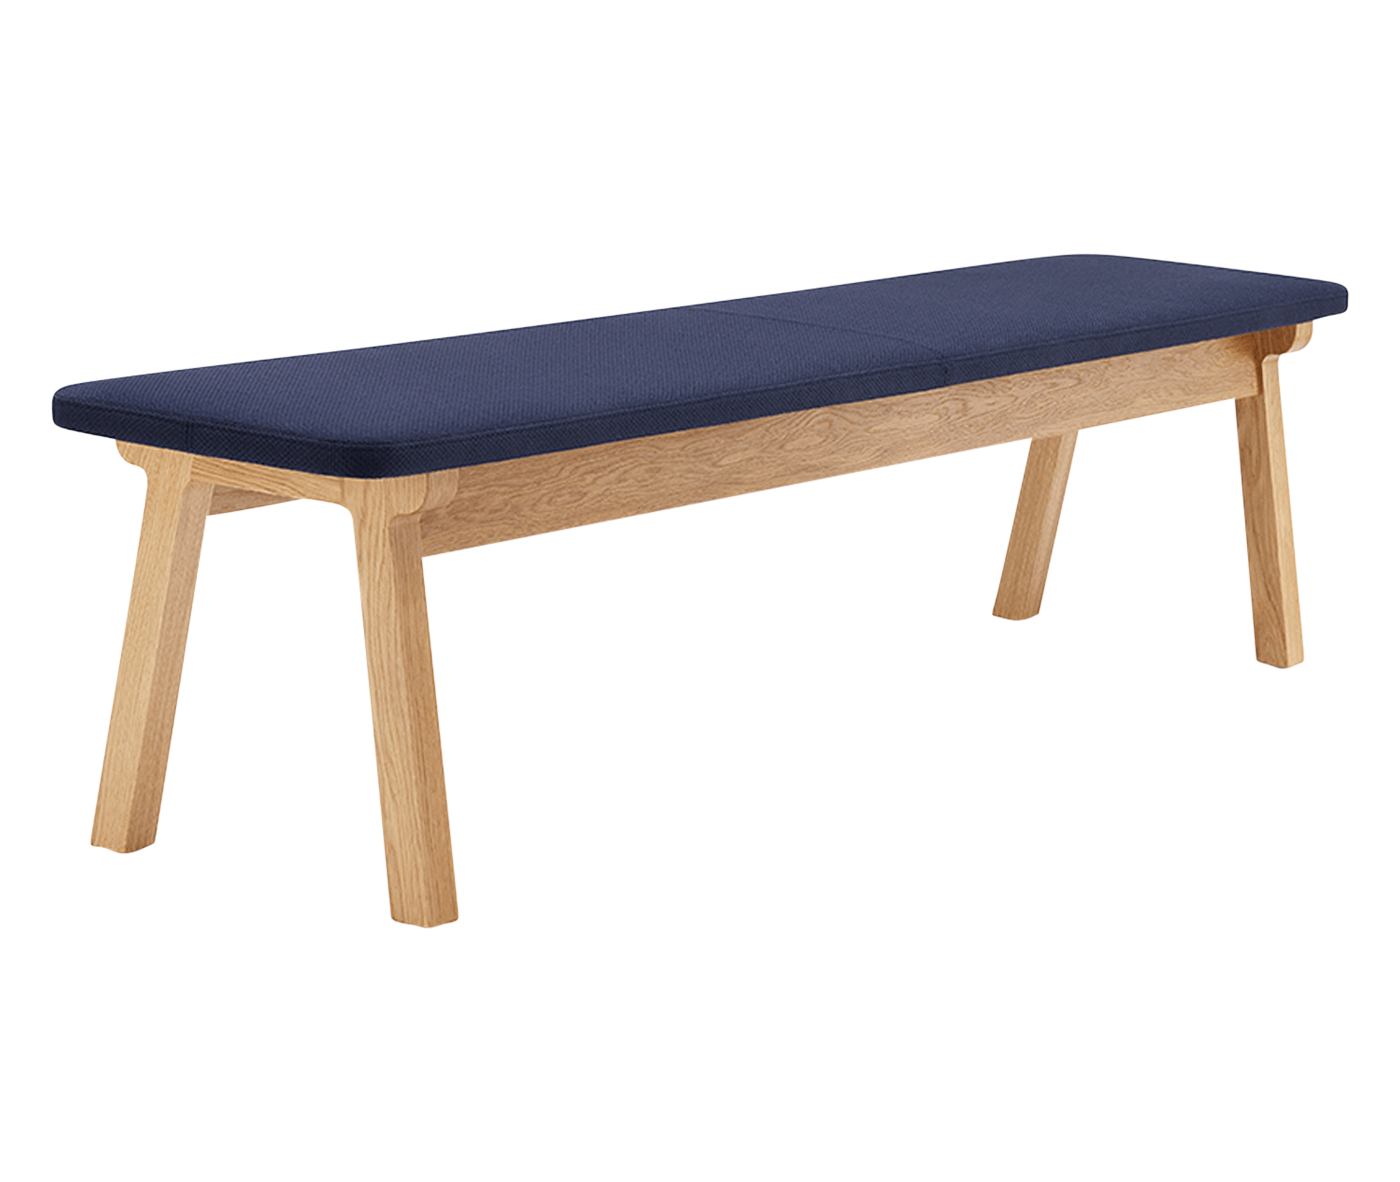 Agent Bench Products For People